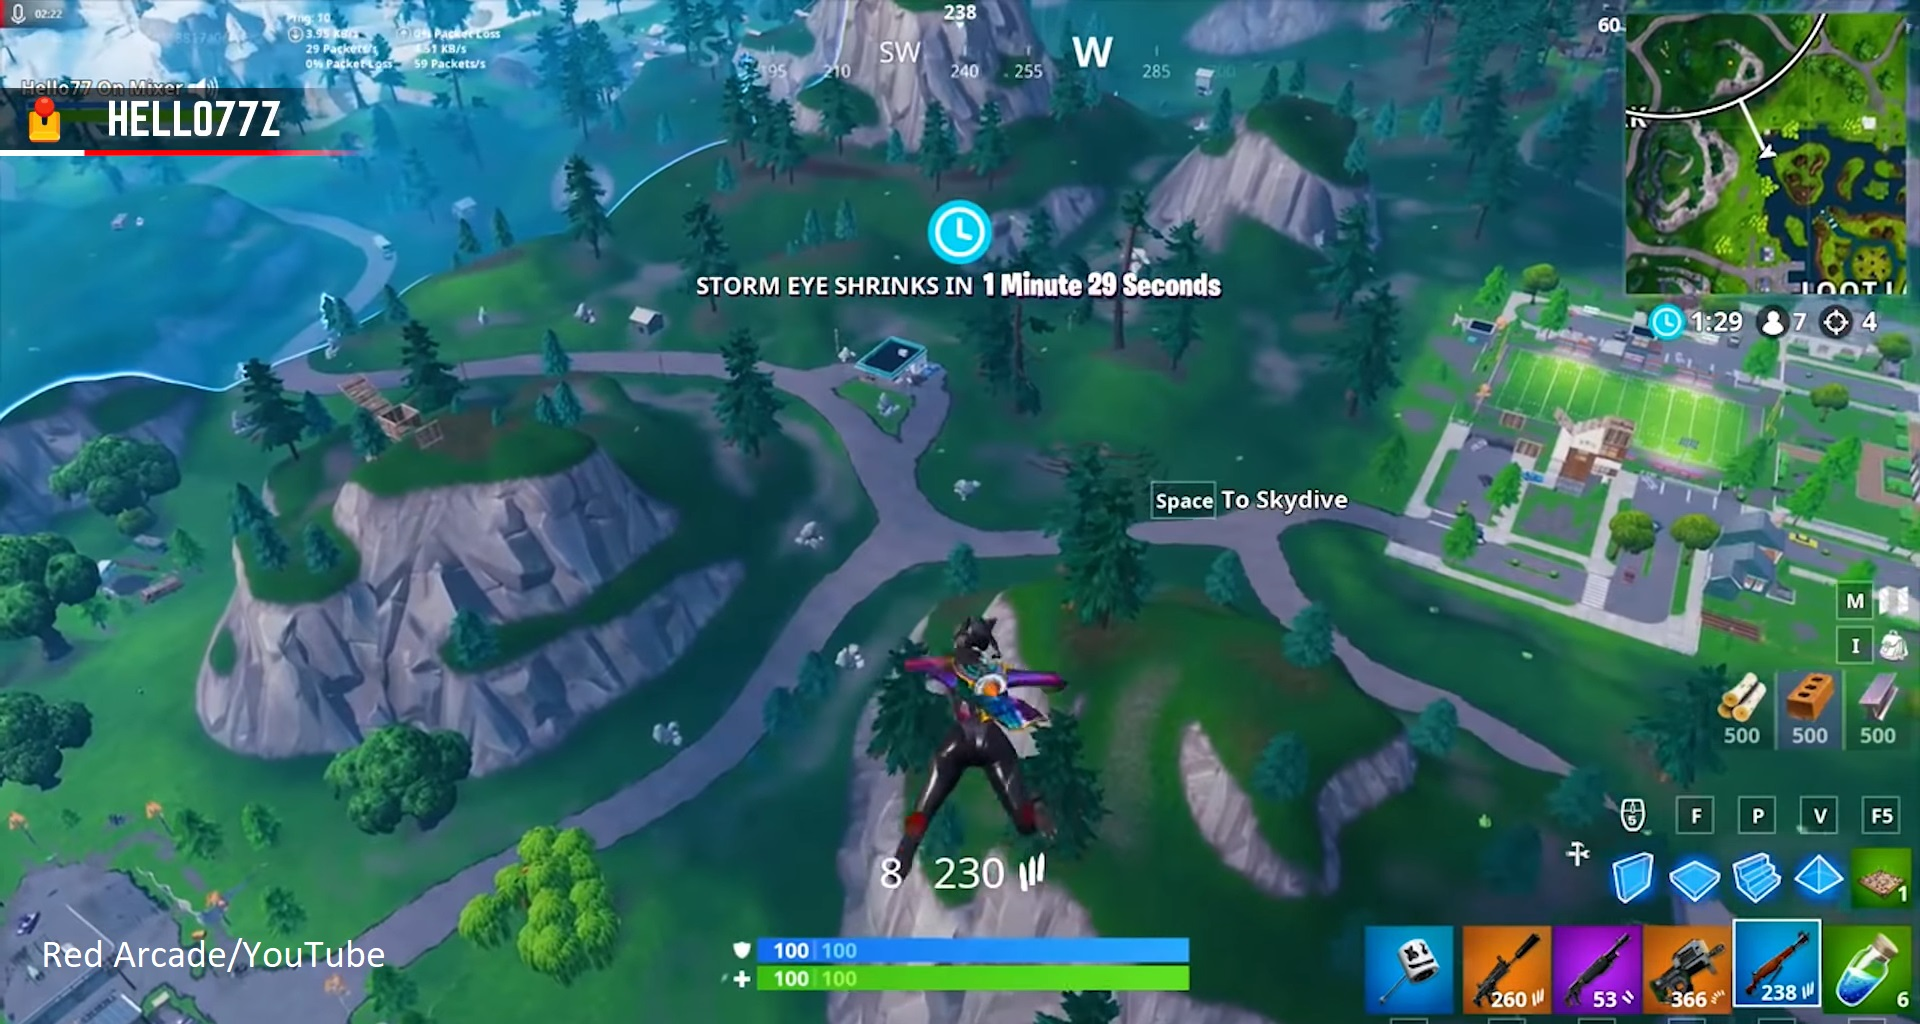 Free Getaway challenges and rewards are coming